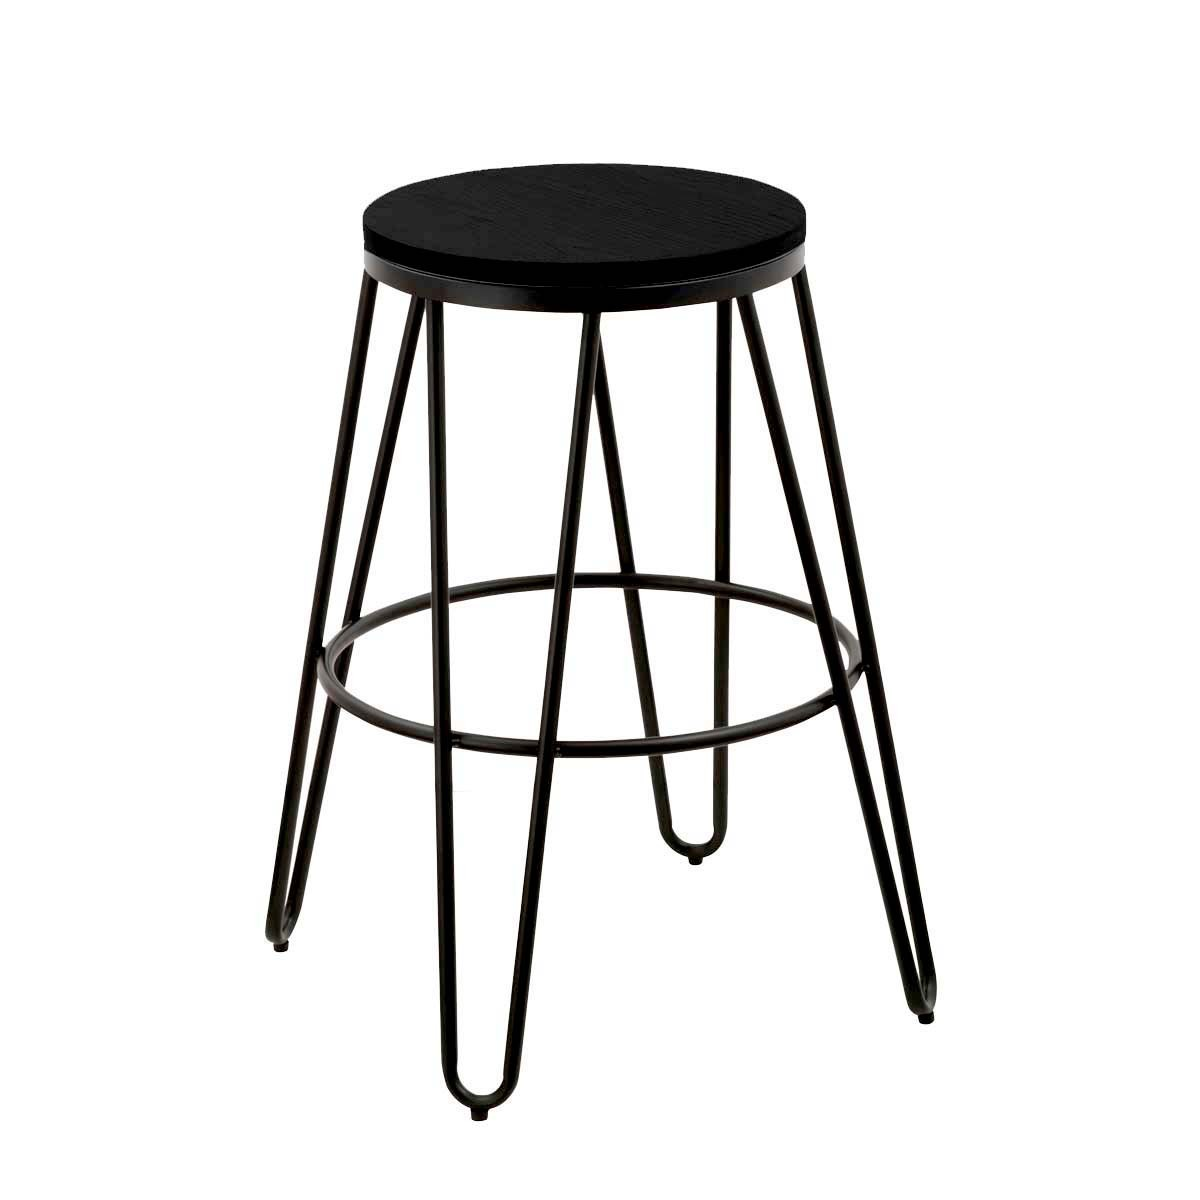 tabouret de bar xavier pauchard mobilier design d coration d 39 int rieur. Black Bedroom Furniture Sets. Home Design Ideas